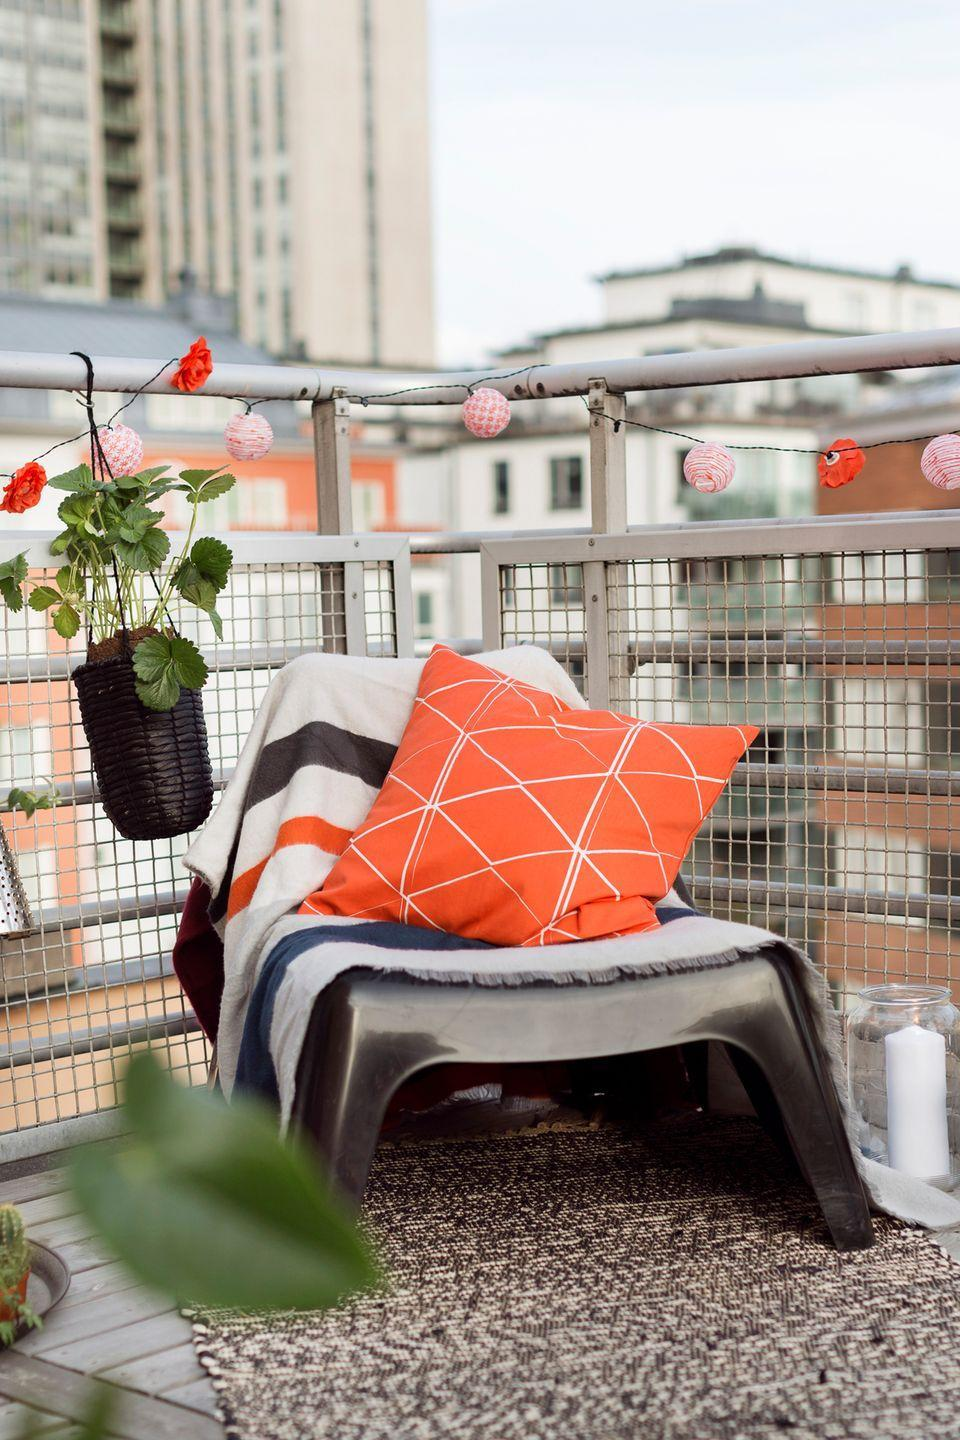 <p>Play up your balcony's casual feel by enveloping it in globe lights. Select a colorful design that will pop against your railings and match the rest of your decor. </p>